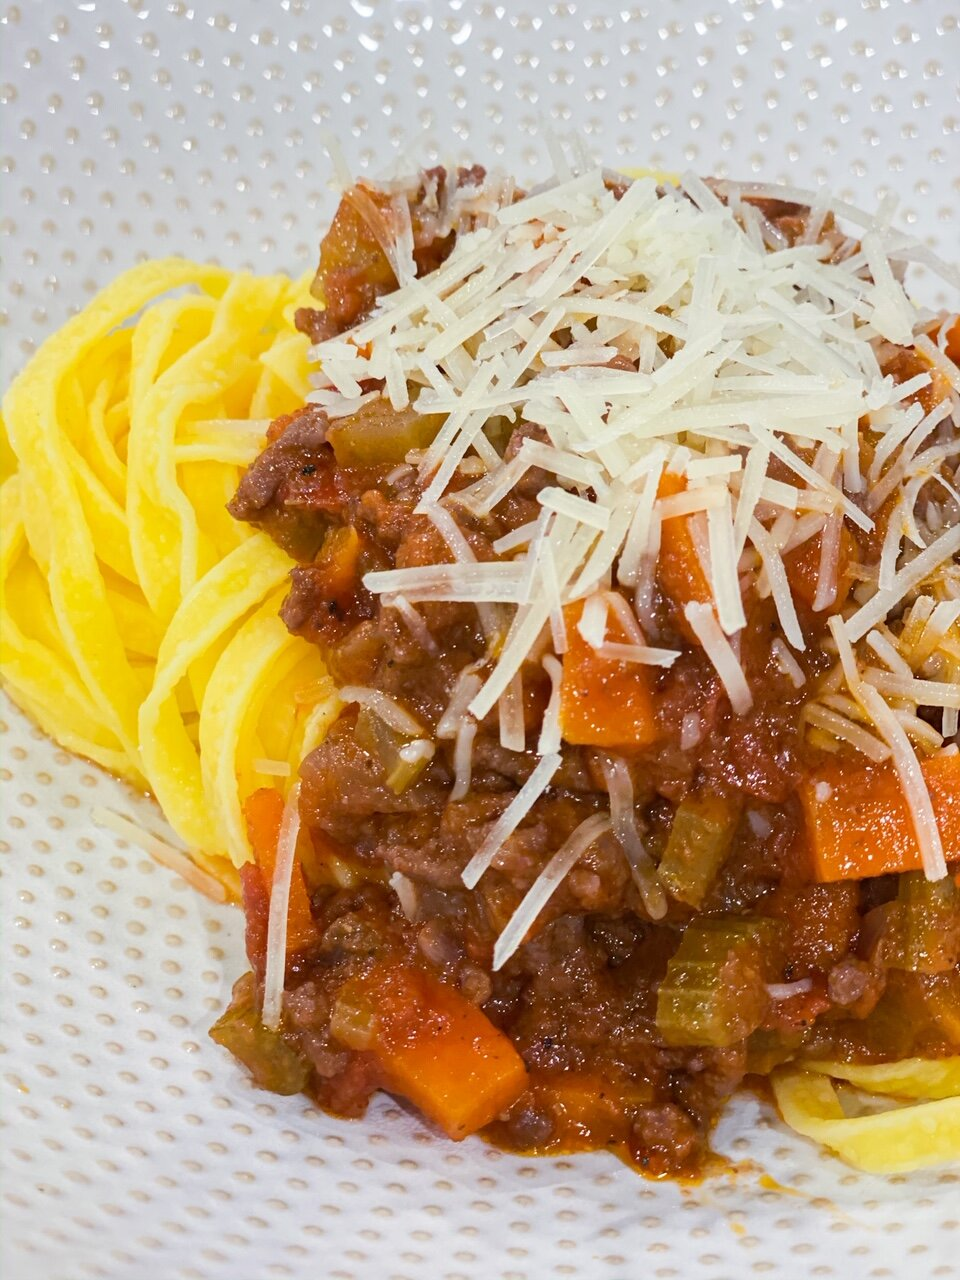 Authentic Bolognese Sauce from Italy